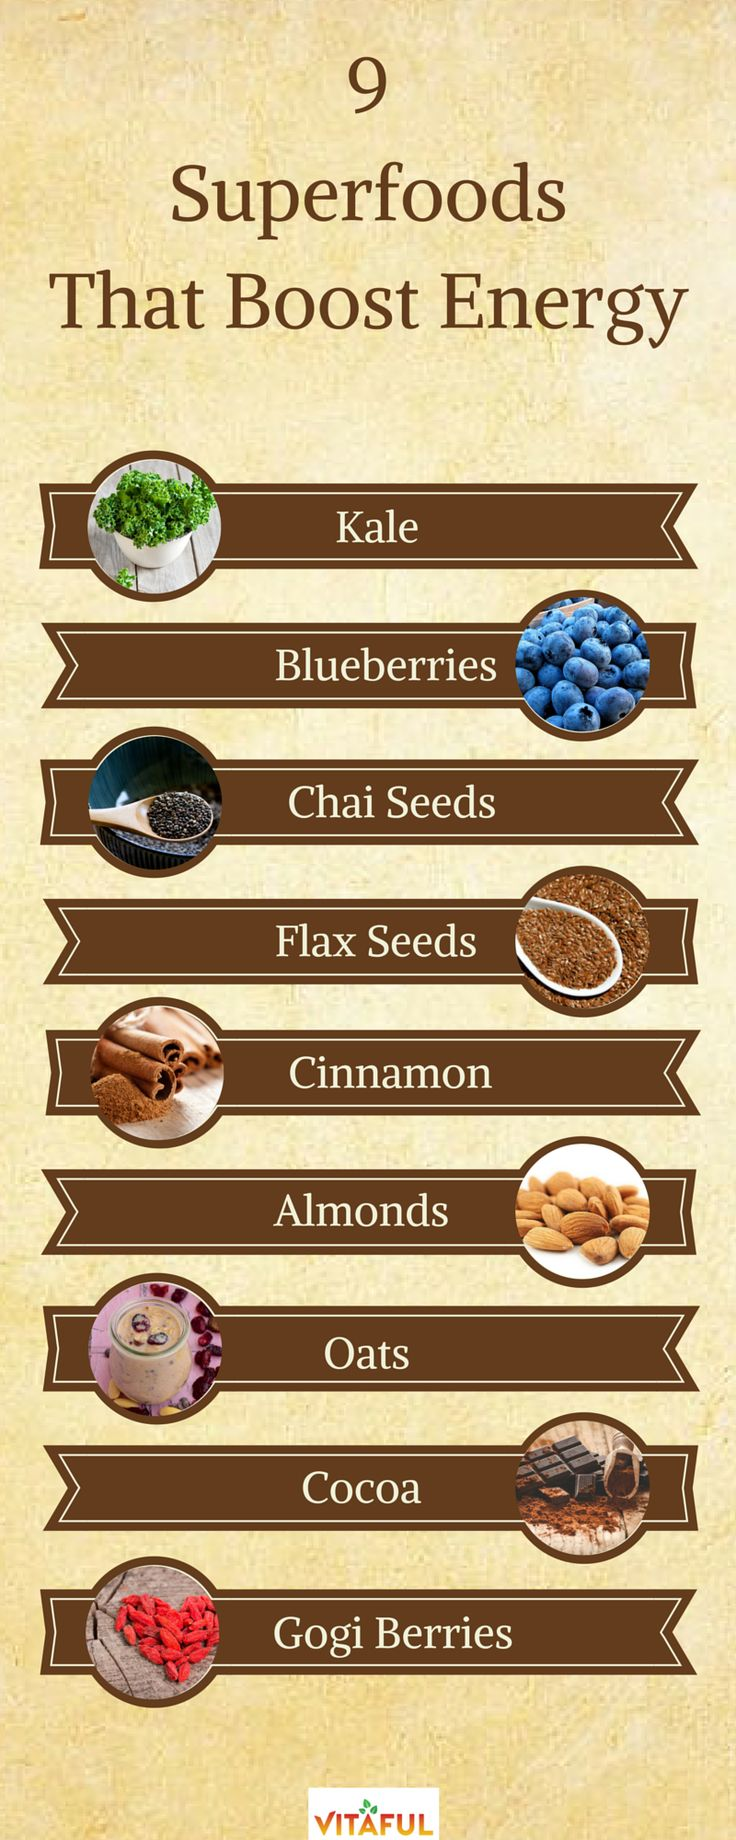 Energy Boosting Tips: Try Eating These 9 Superfoods To Help Boost Your Energy The Healthy and Naturally Way.